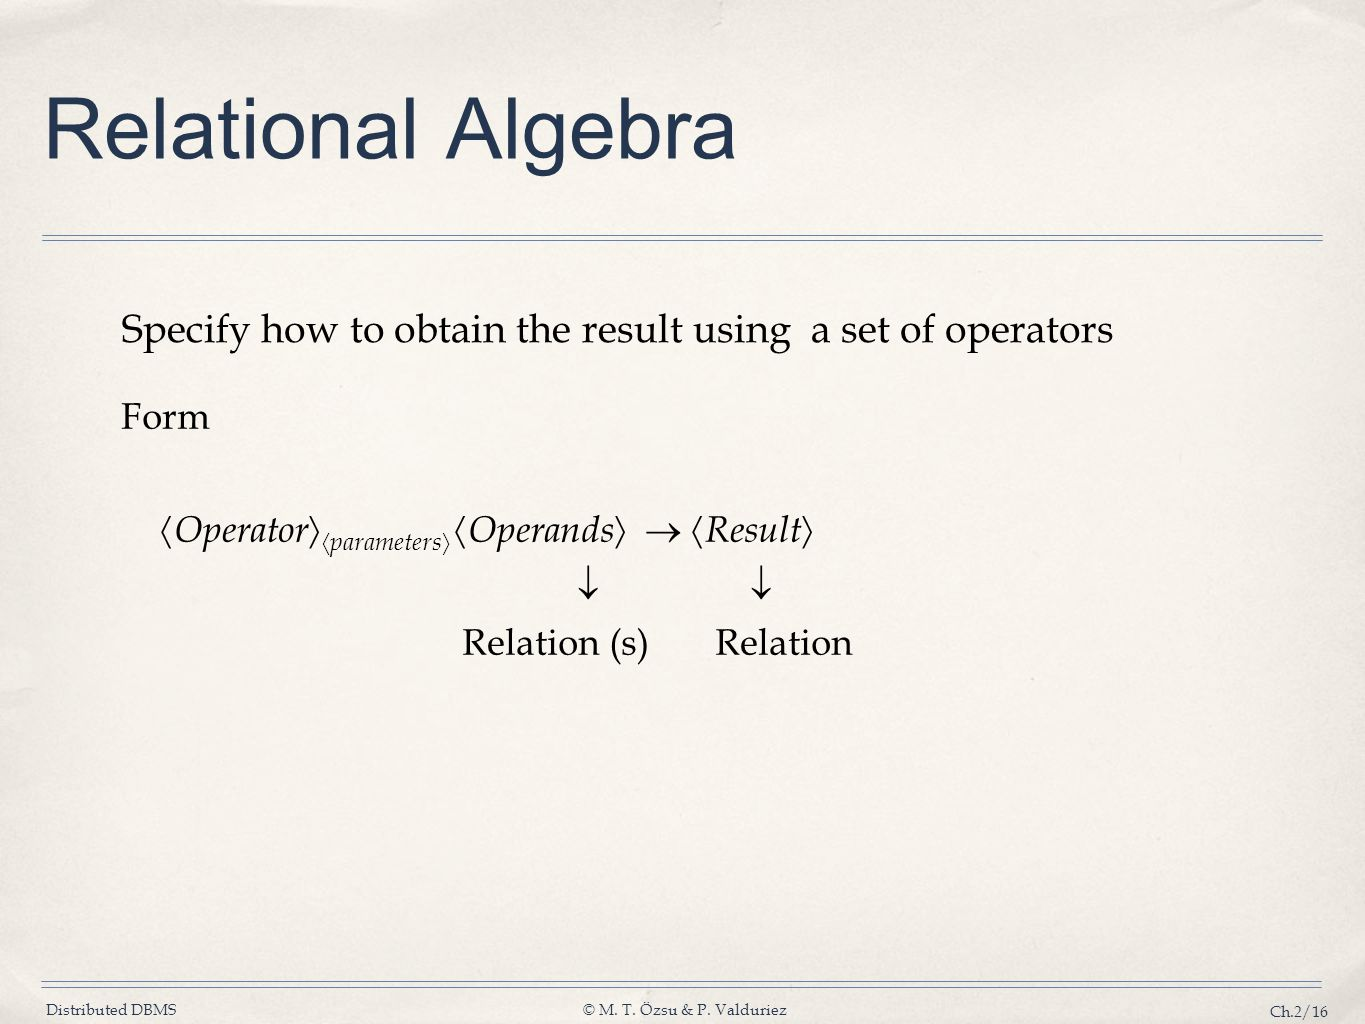 Specify how to obtain the result using a set of operators